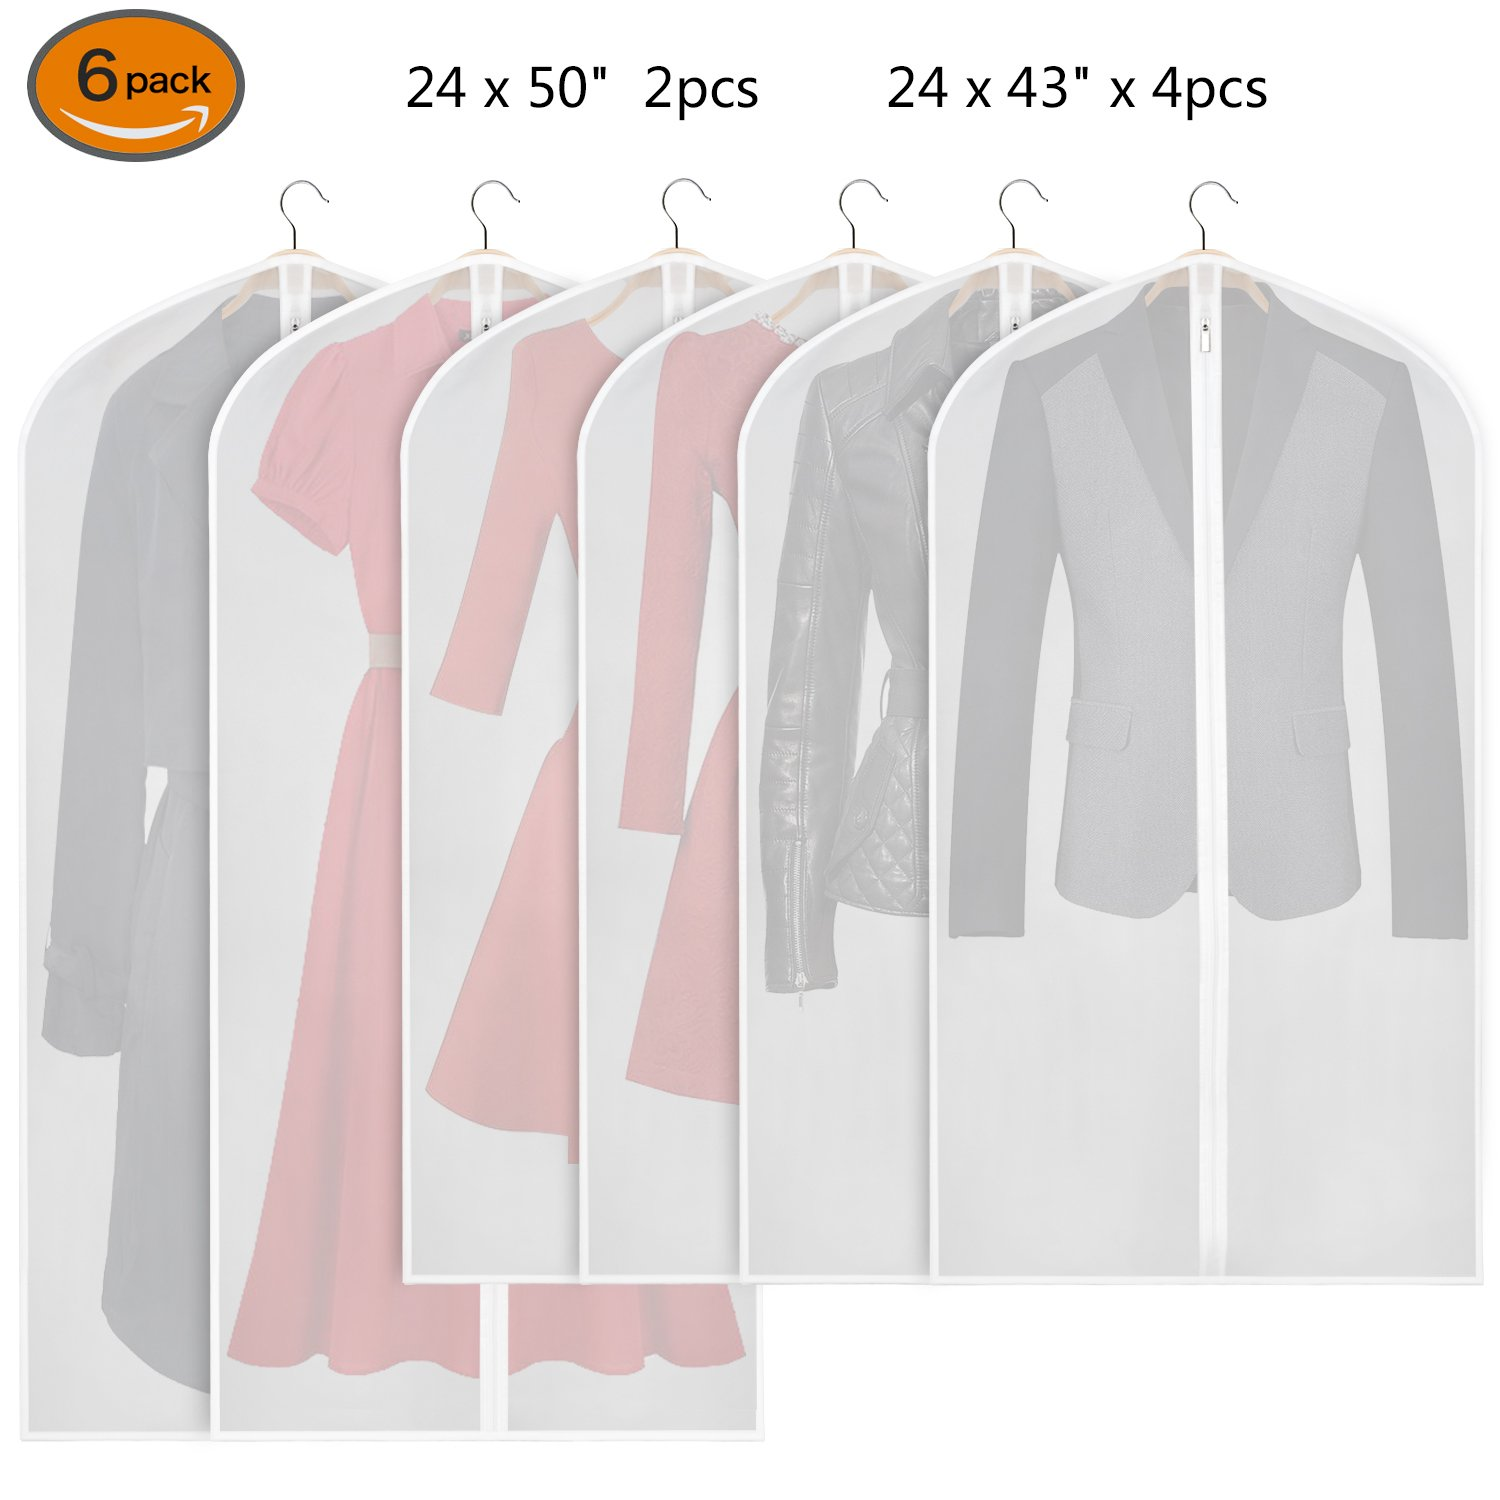 Zilink Hanging Garment Bag Lightweight Suit Bags Moth-proof (Set of 6) with Study Full Zipper for Closet Storage and Travel [Upgraded Version]